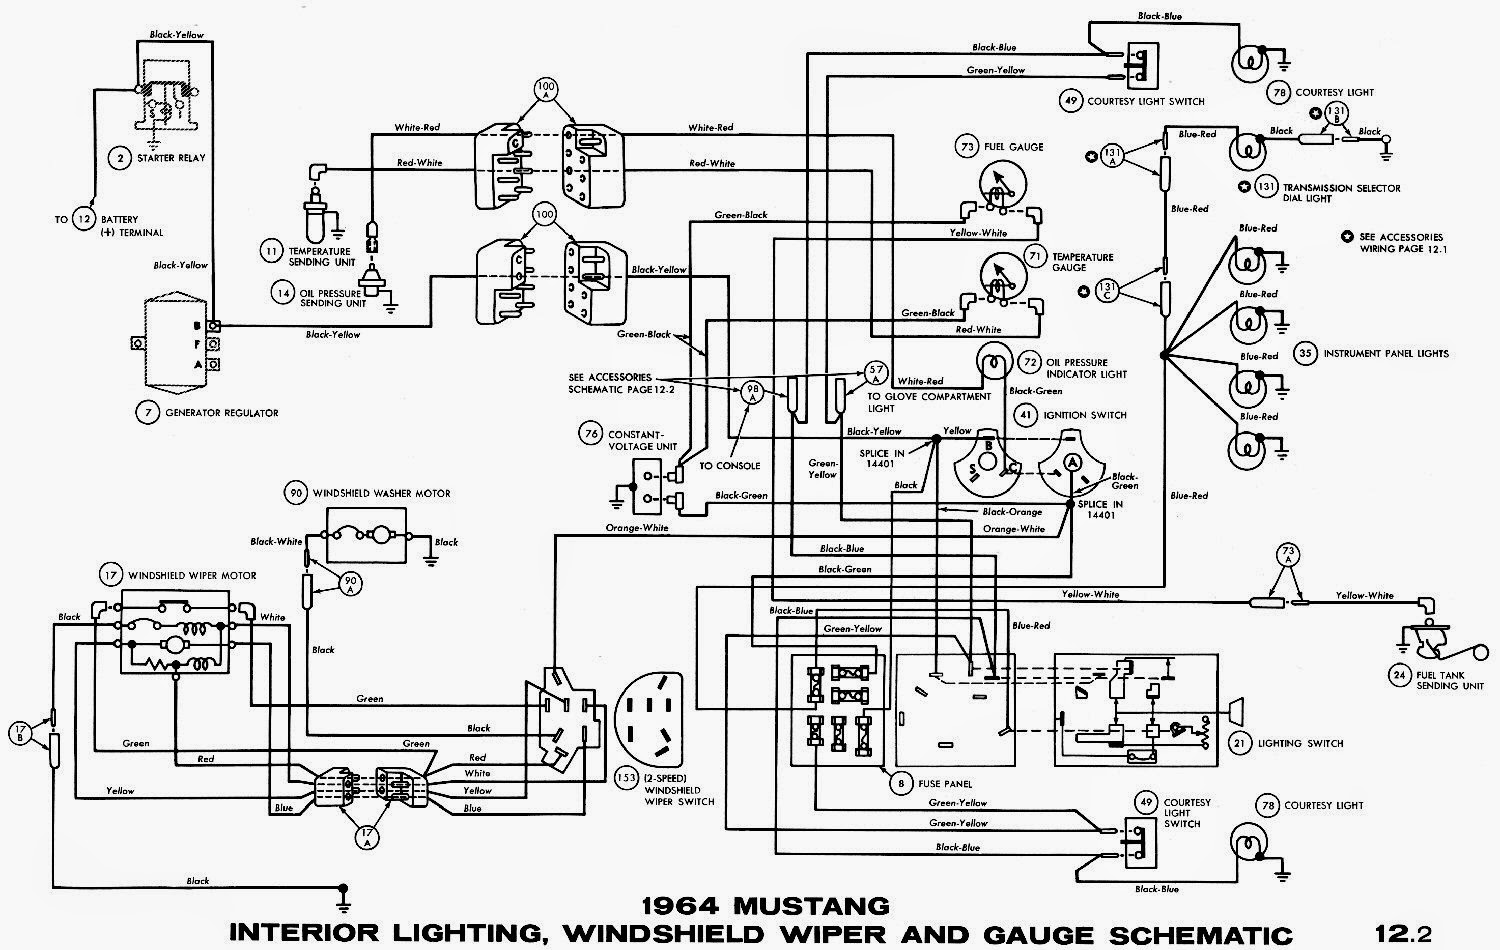 85 mustang ignition switch wiring diagram [ 1500 x 950 Pixel ]